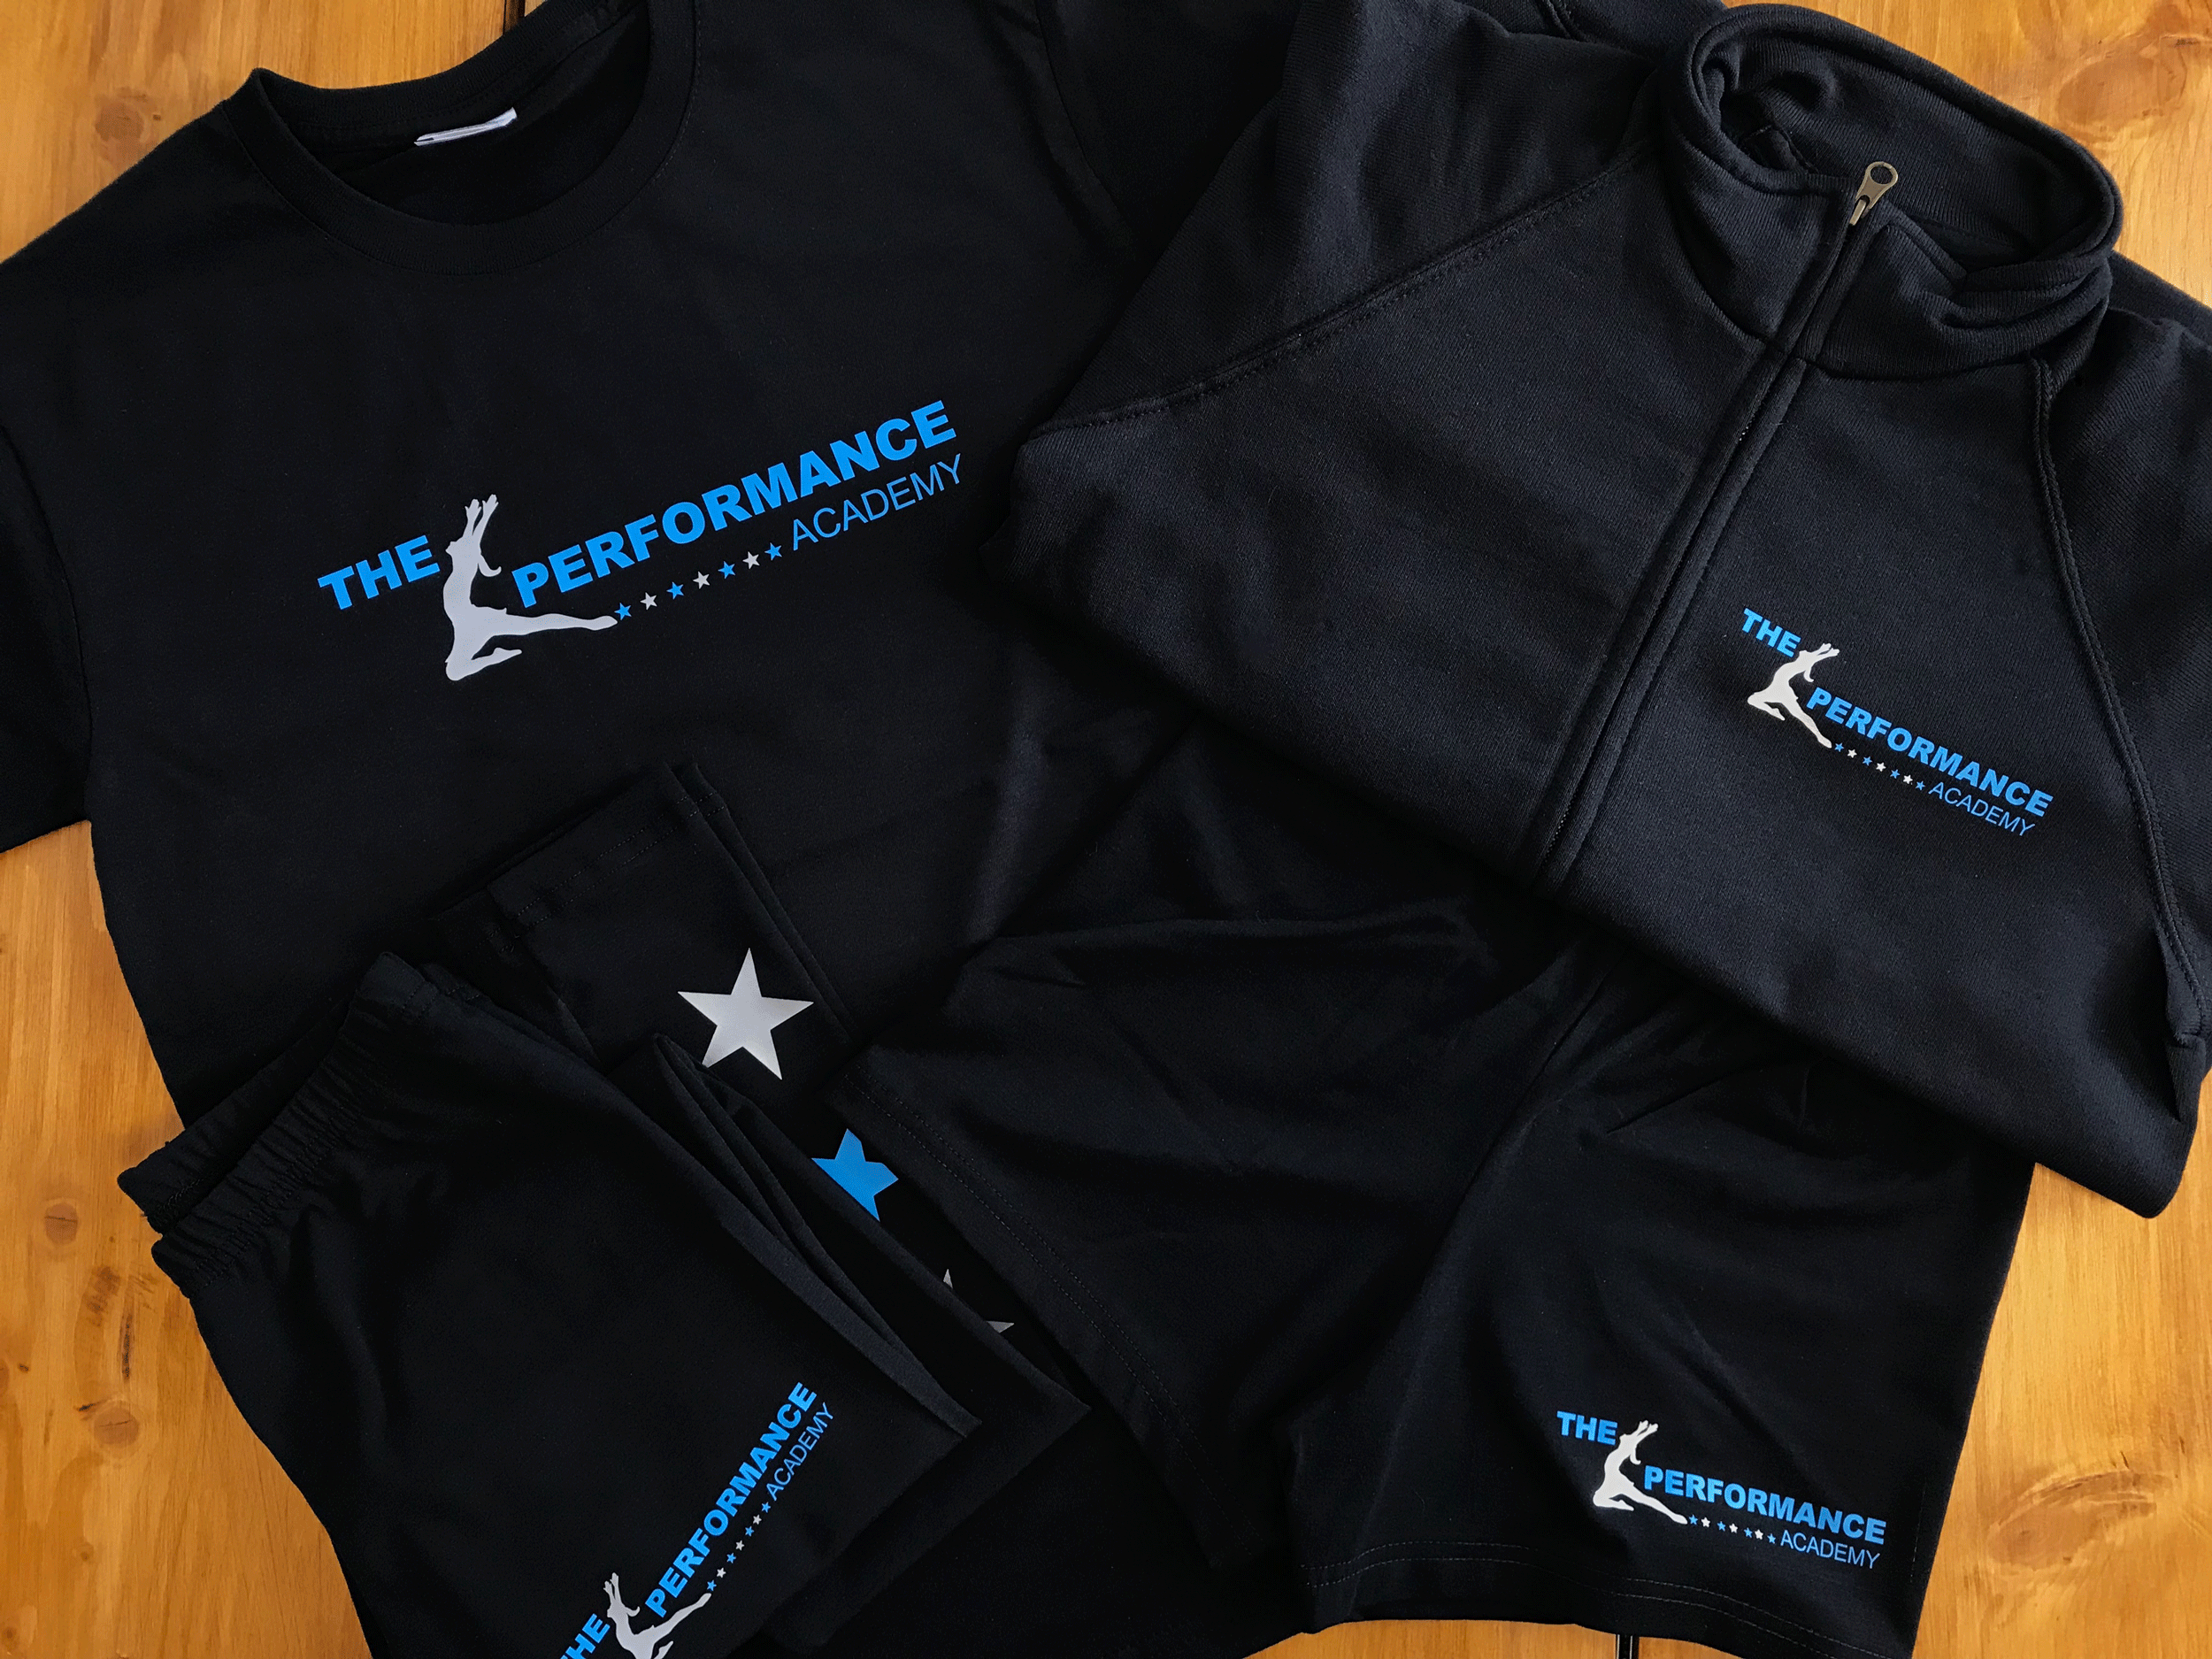 Promotional Clothing — Chameleon Design and PrintPromotional